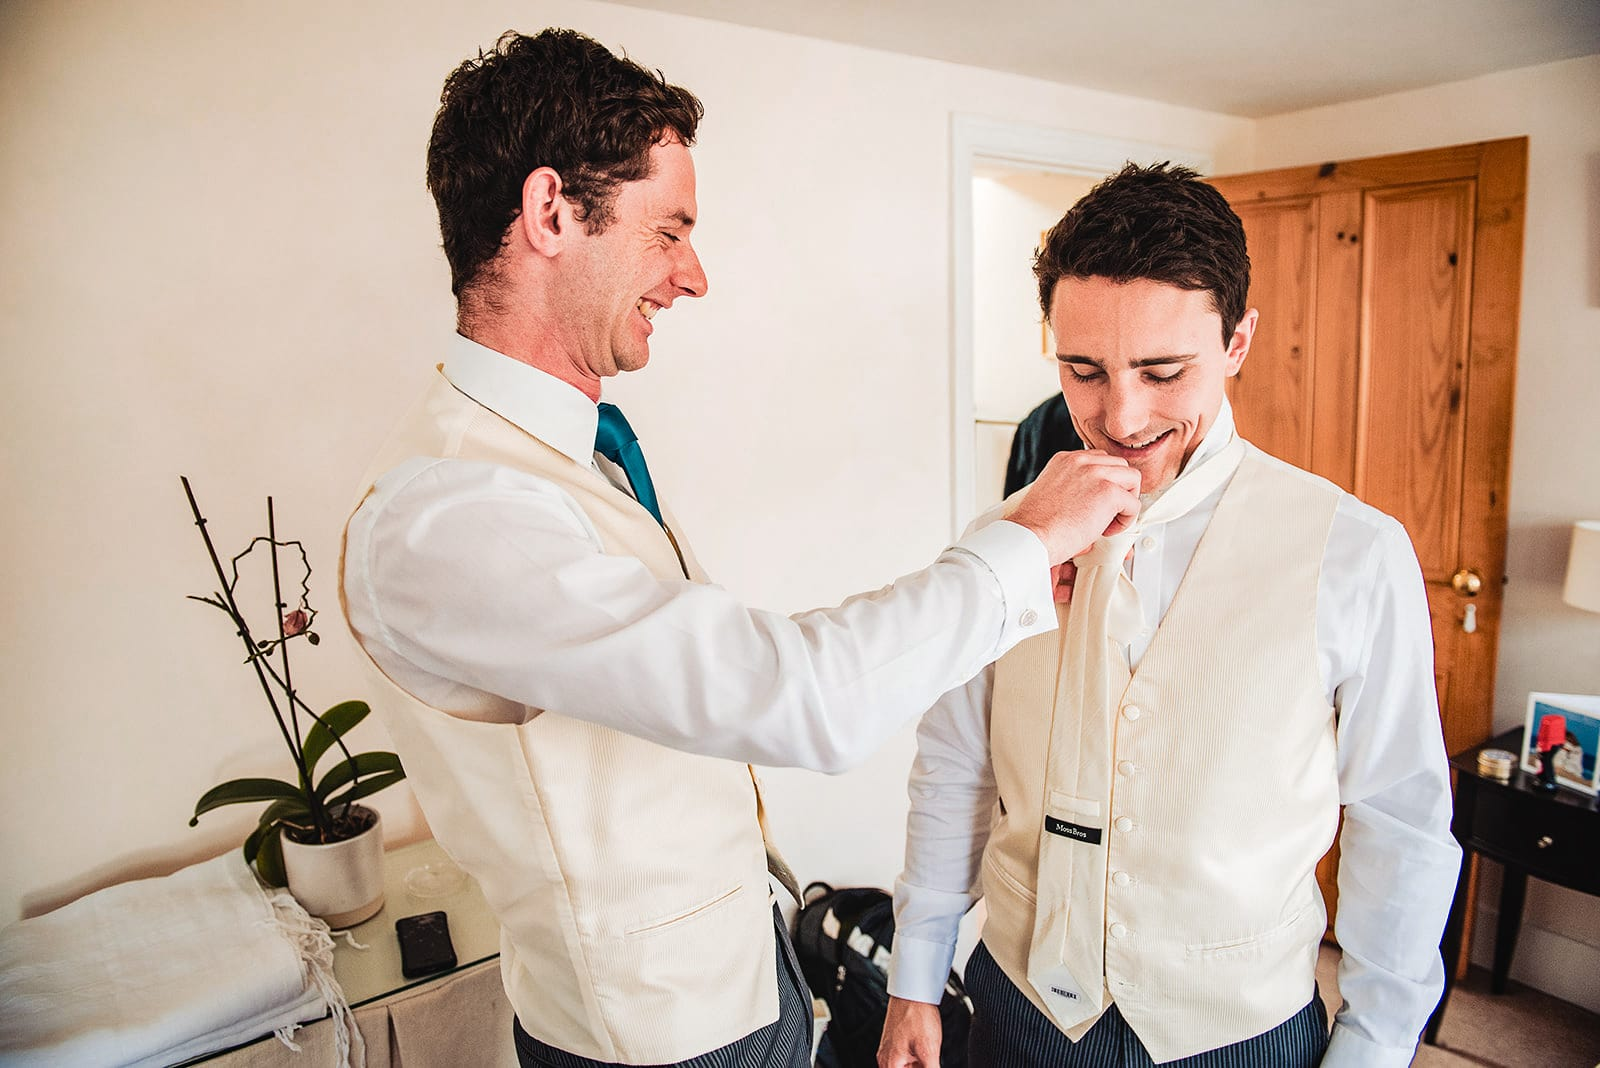 Groom and his best man laugh as he puts on his tie the wrong way round